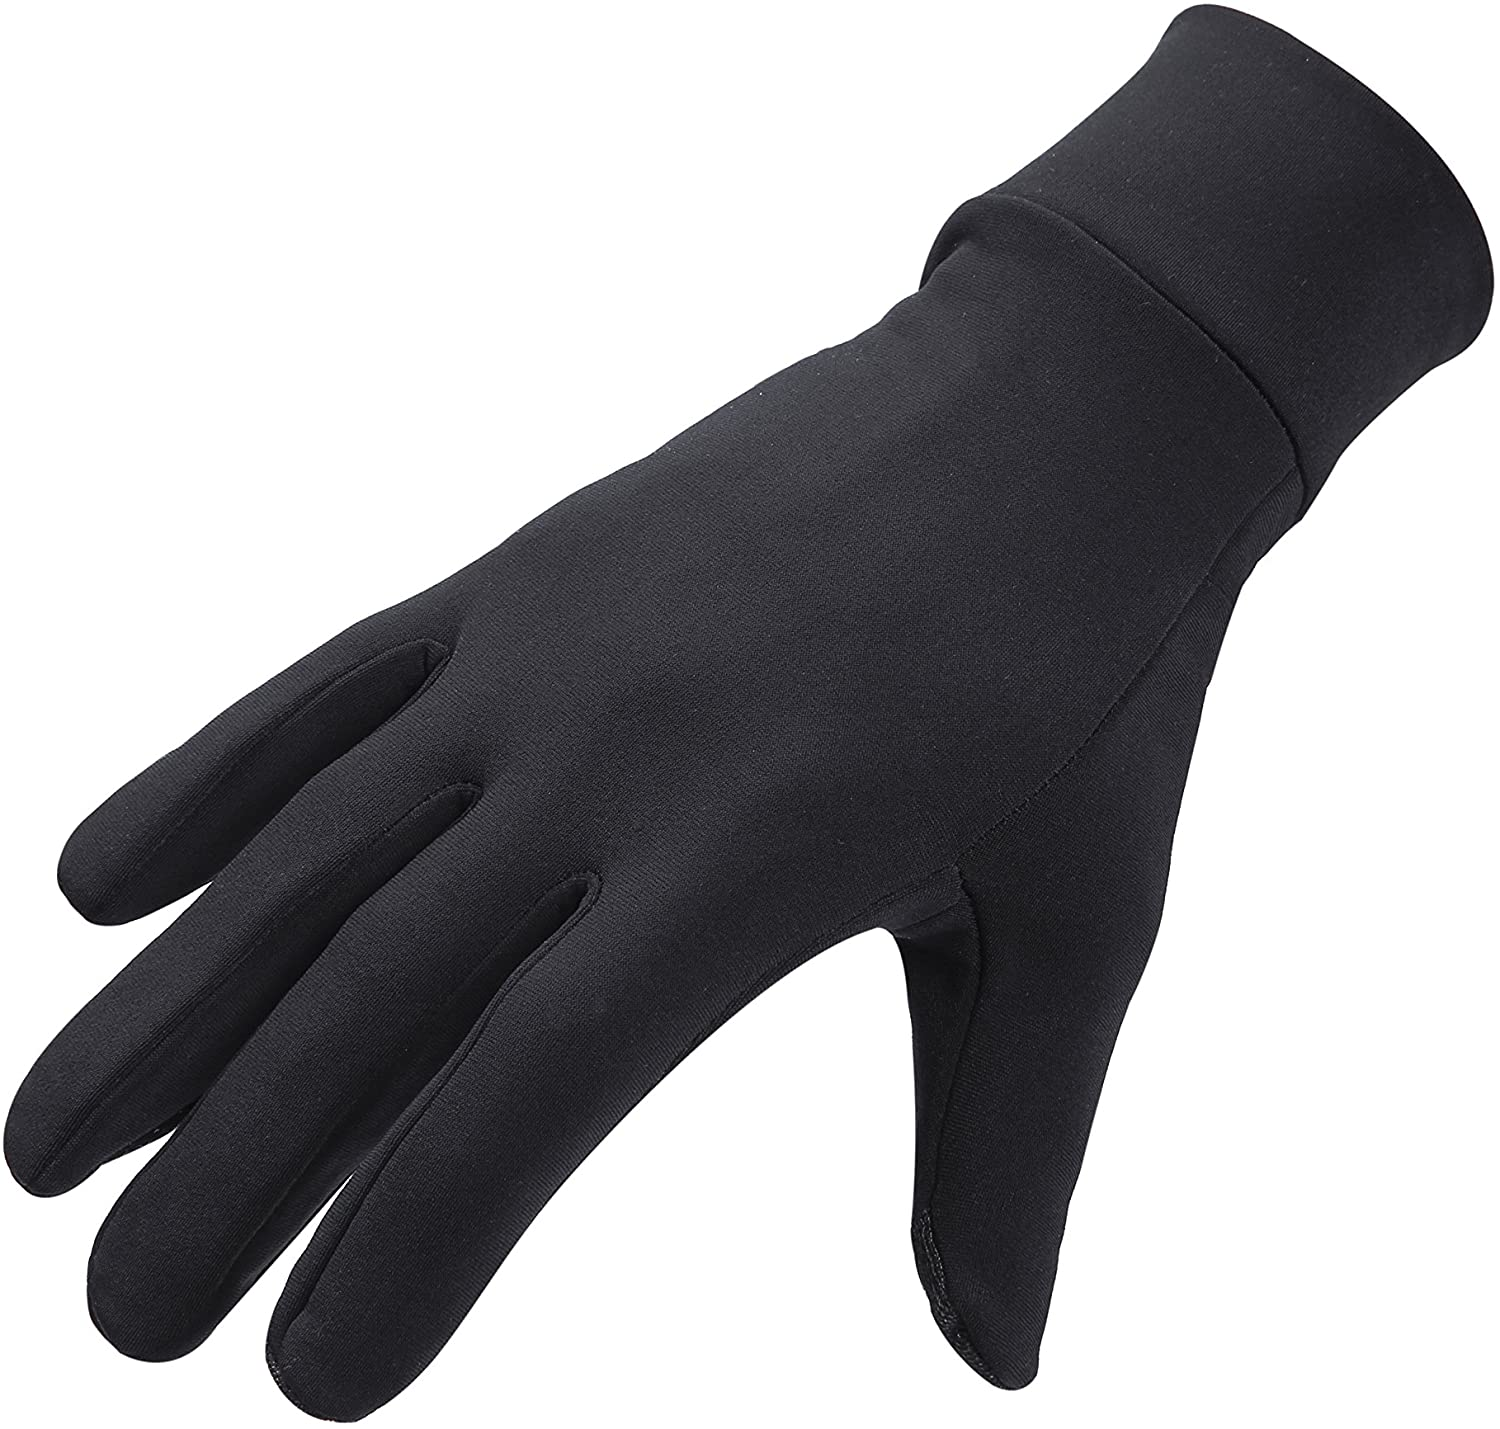 AMORON Running Gloves with Touchscreen,Lightweight Cycling Gloves for Men and Women Biking, Hiking and Outdoor Sports.